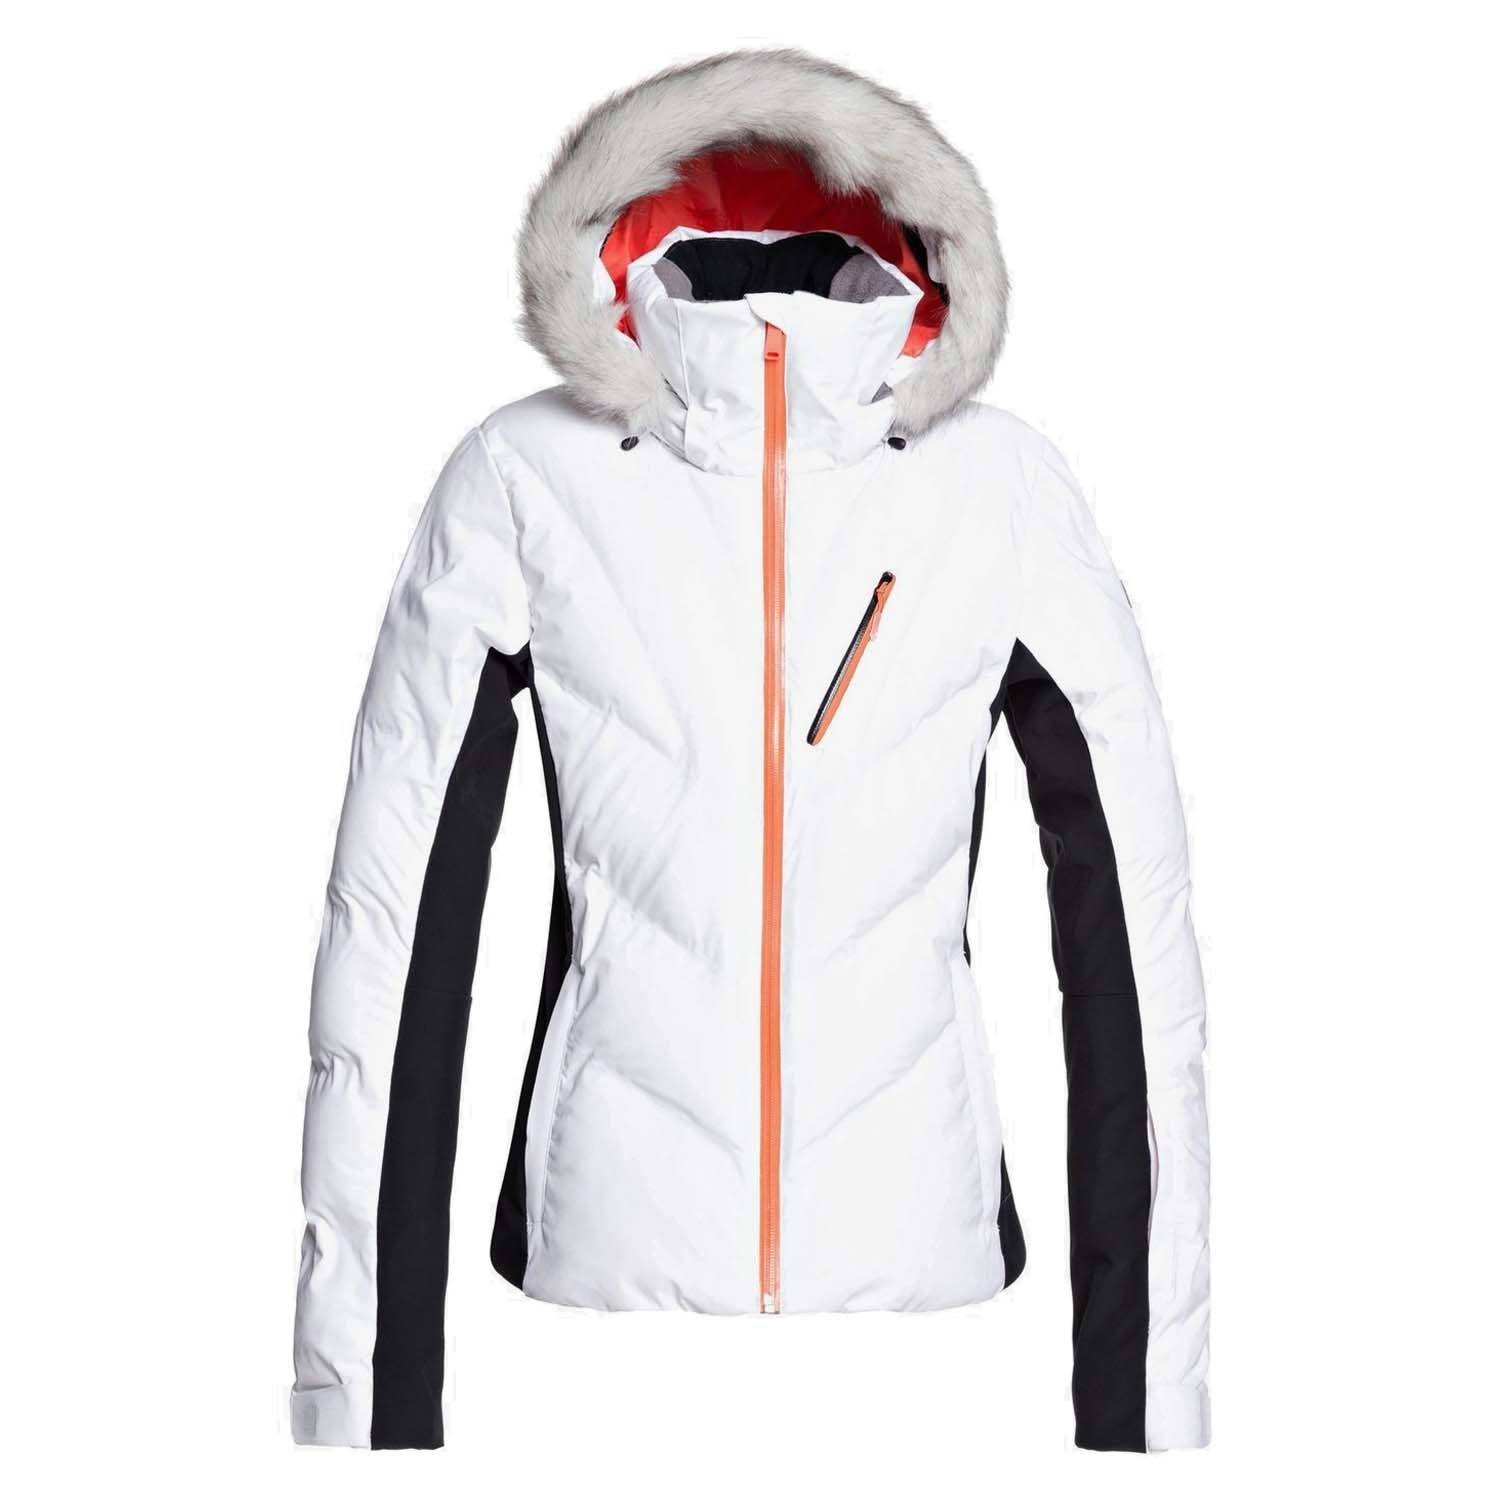 Winter Coat Short Rip stop Down Jacket Warm Hoods Windbreaker Thick Puffer Jacket For Women